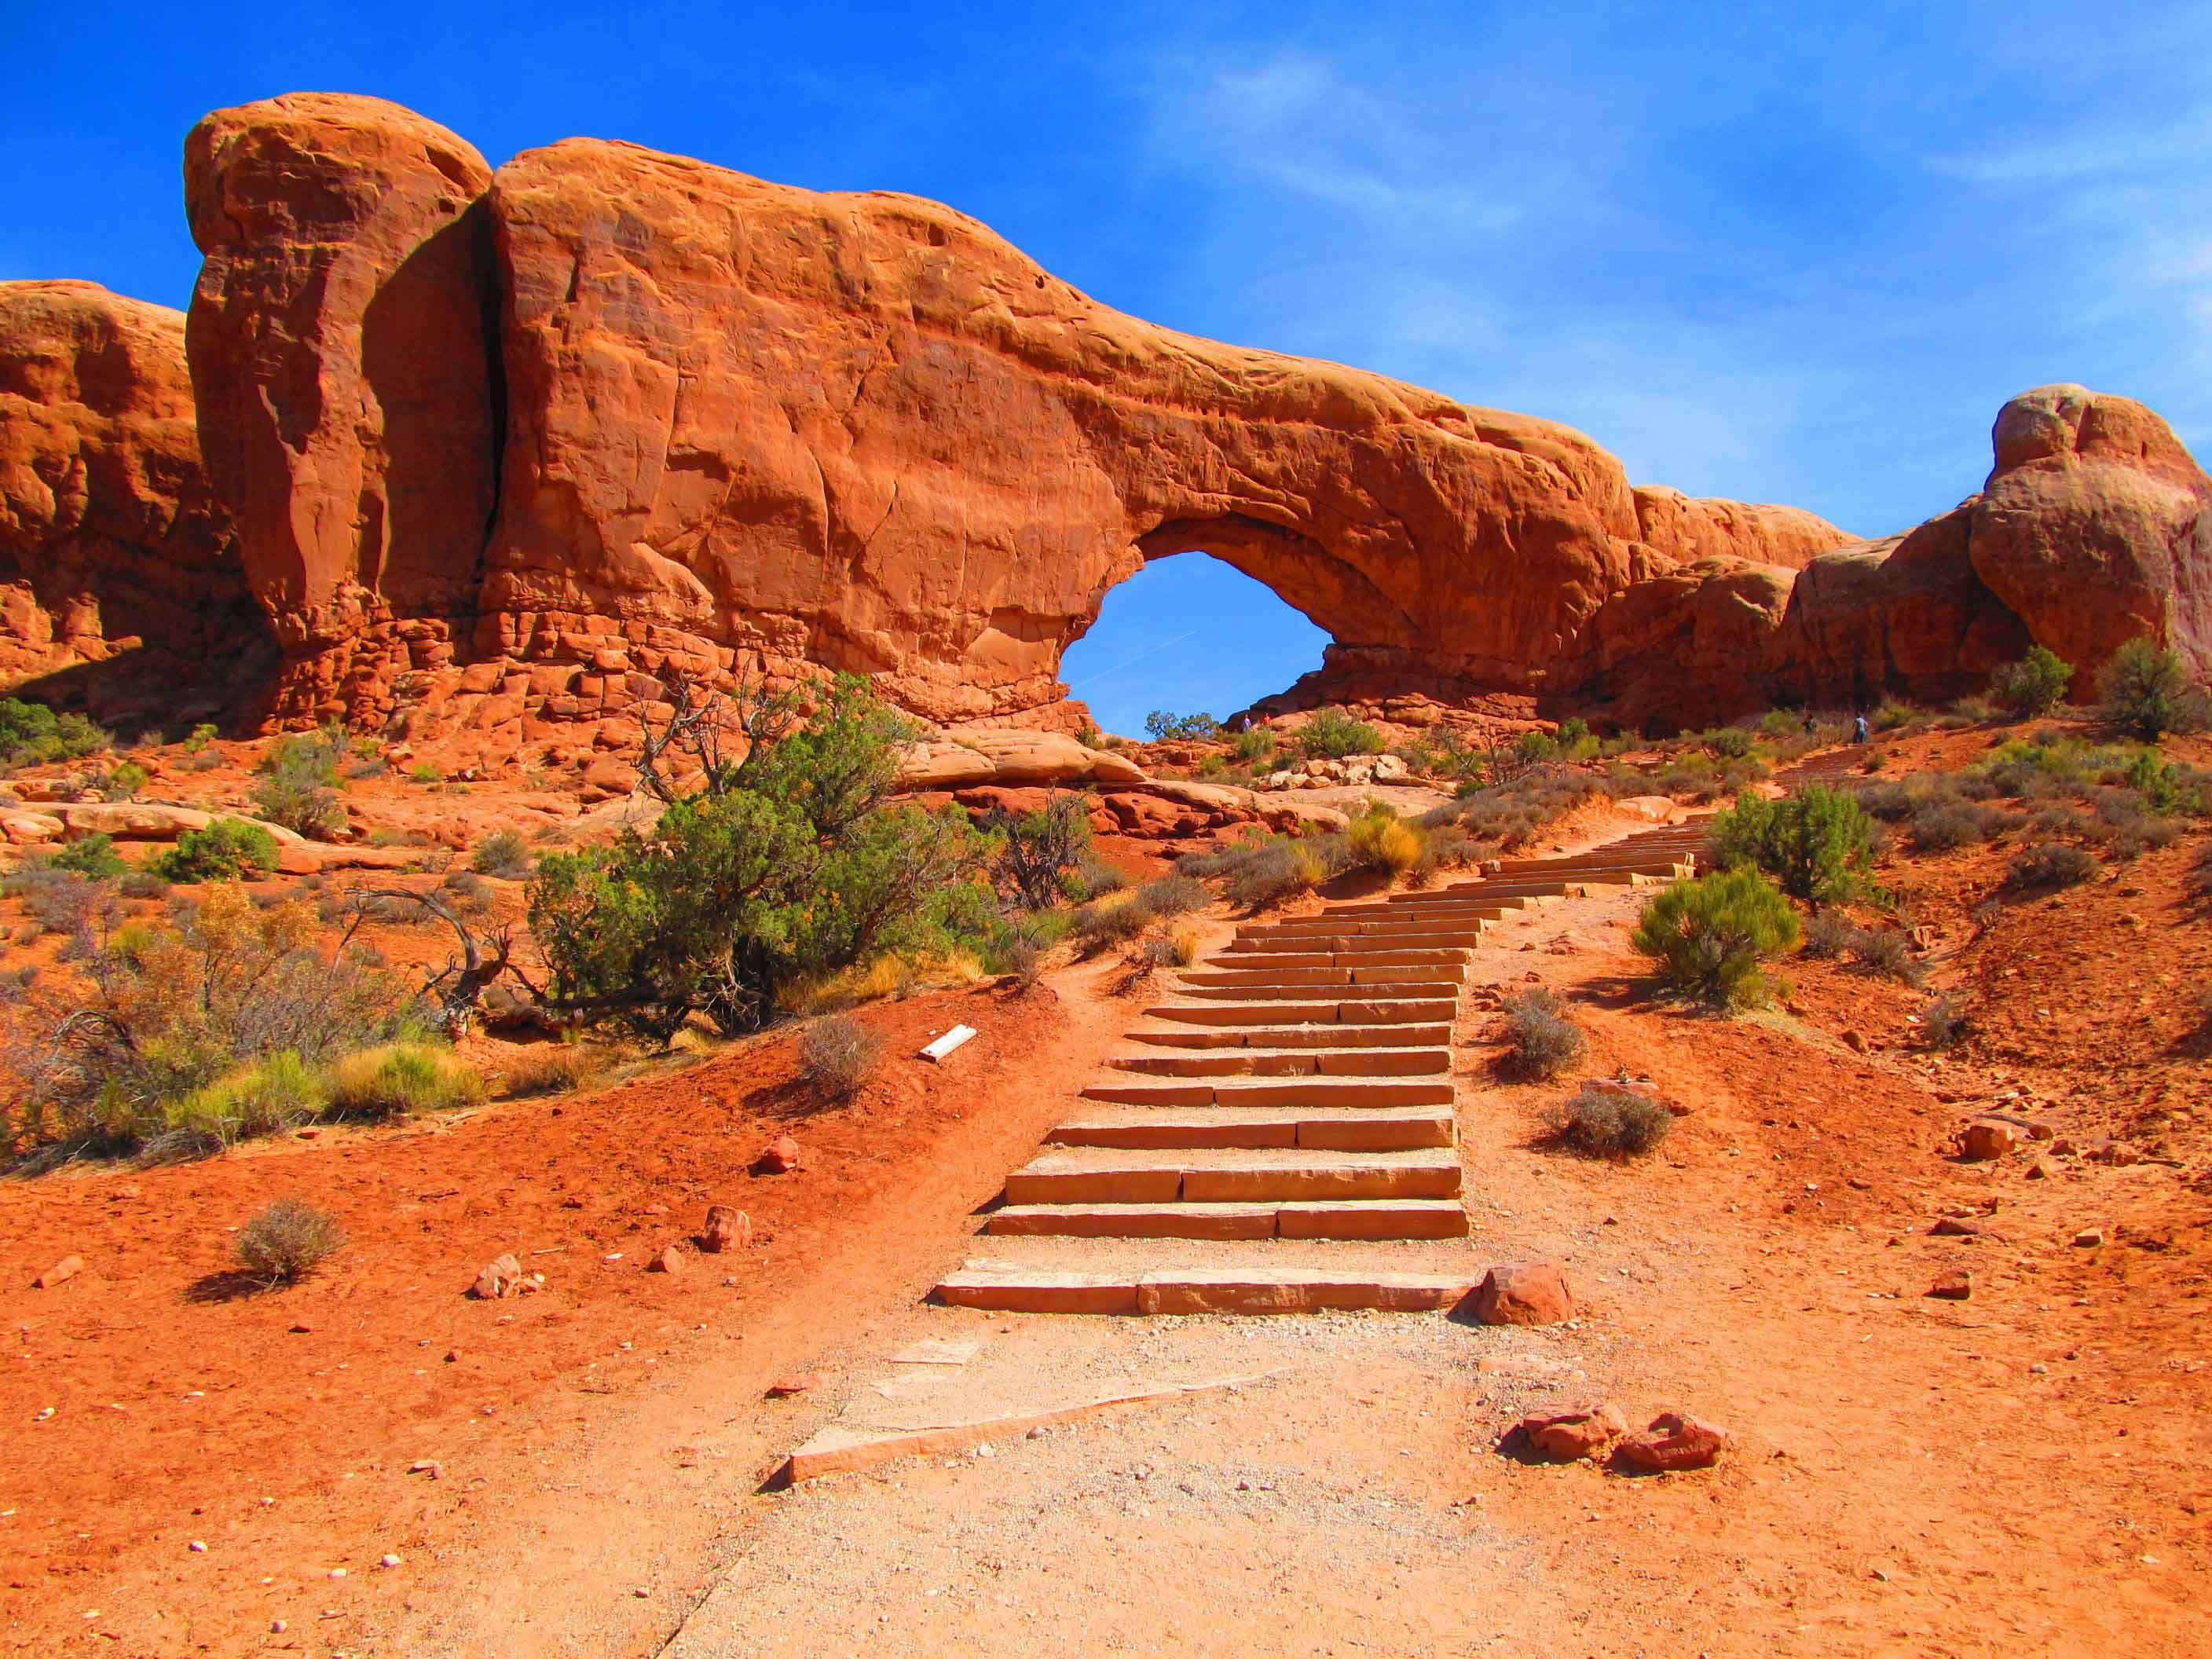 Arches National Park Wallpapers WallpapersIn4knet 2816x2112